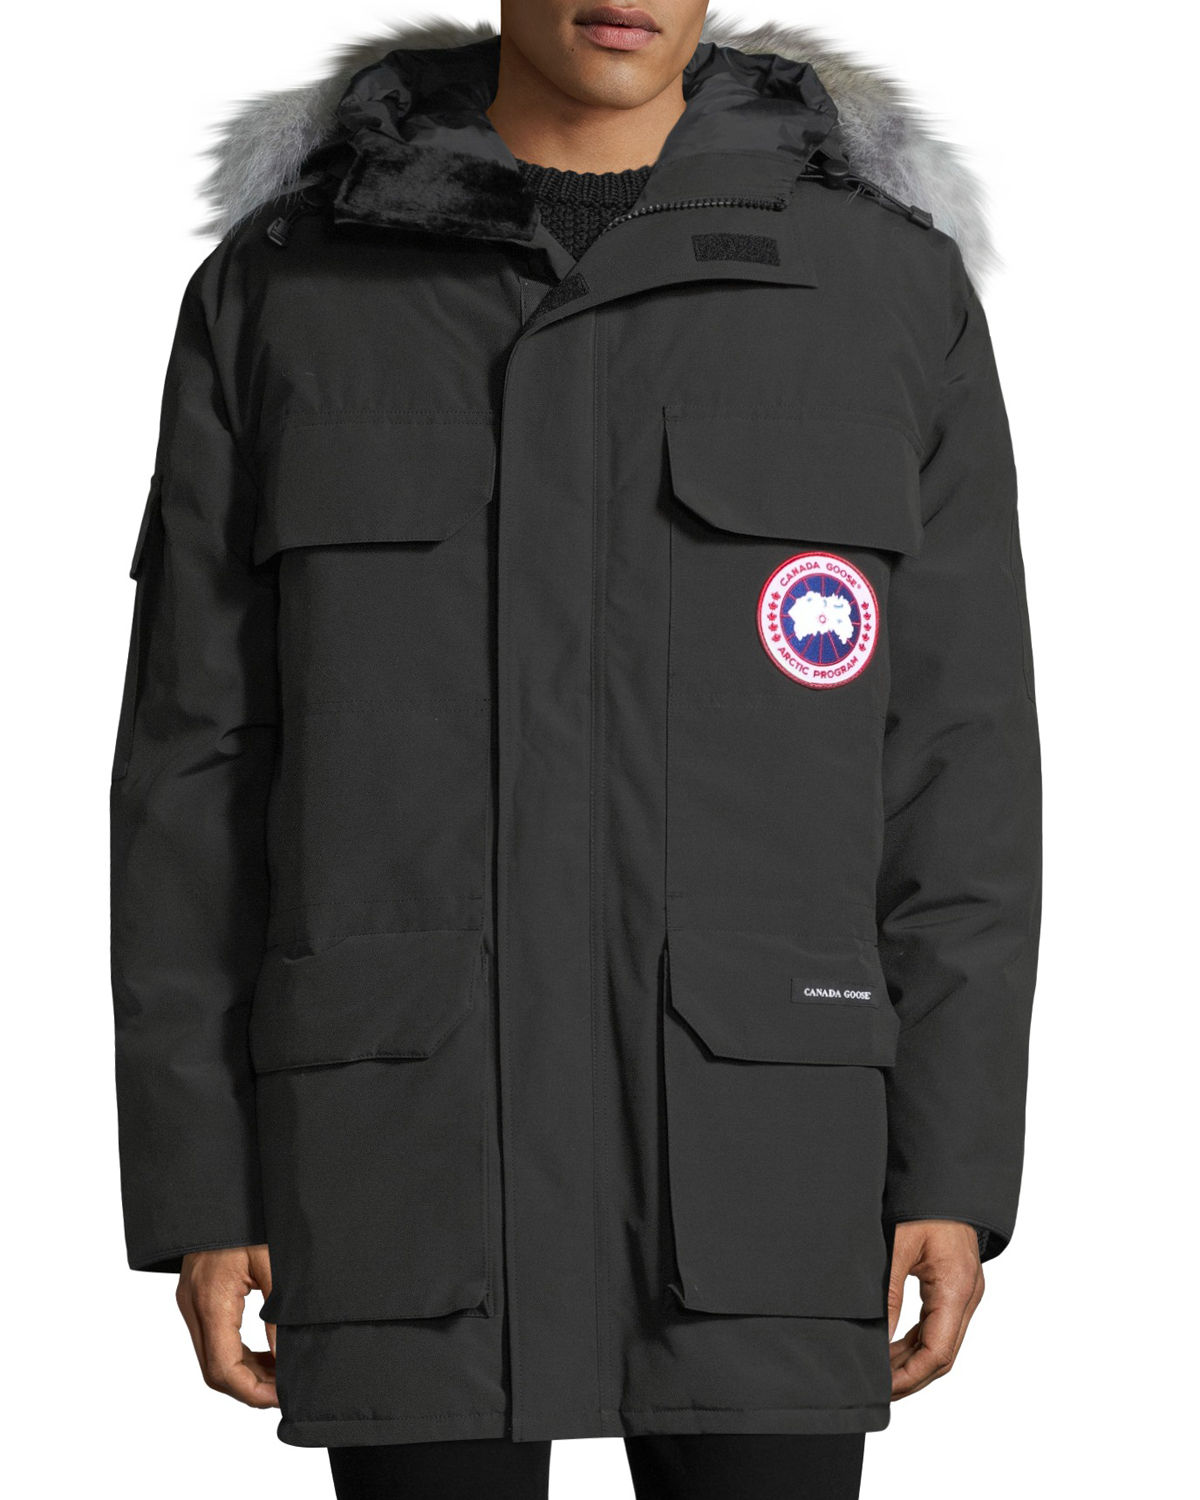 27f2d541a86 Canada Goose Men'S Expedition Hooded Parka Coat In Black | ModeSens